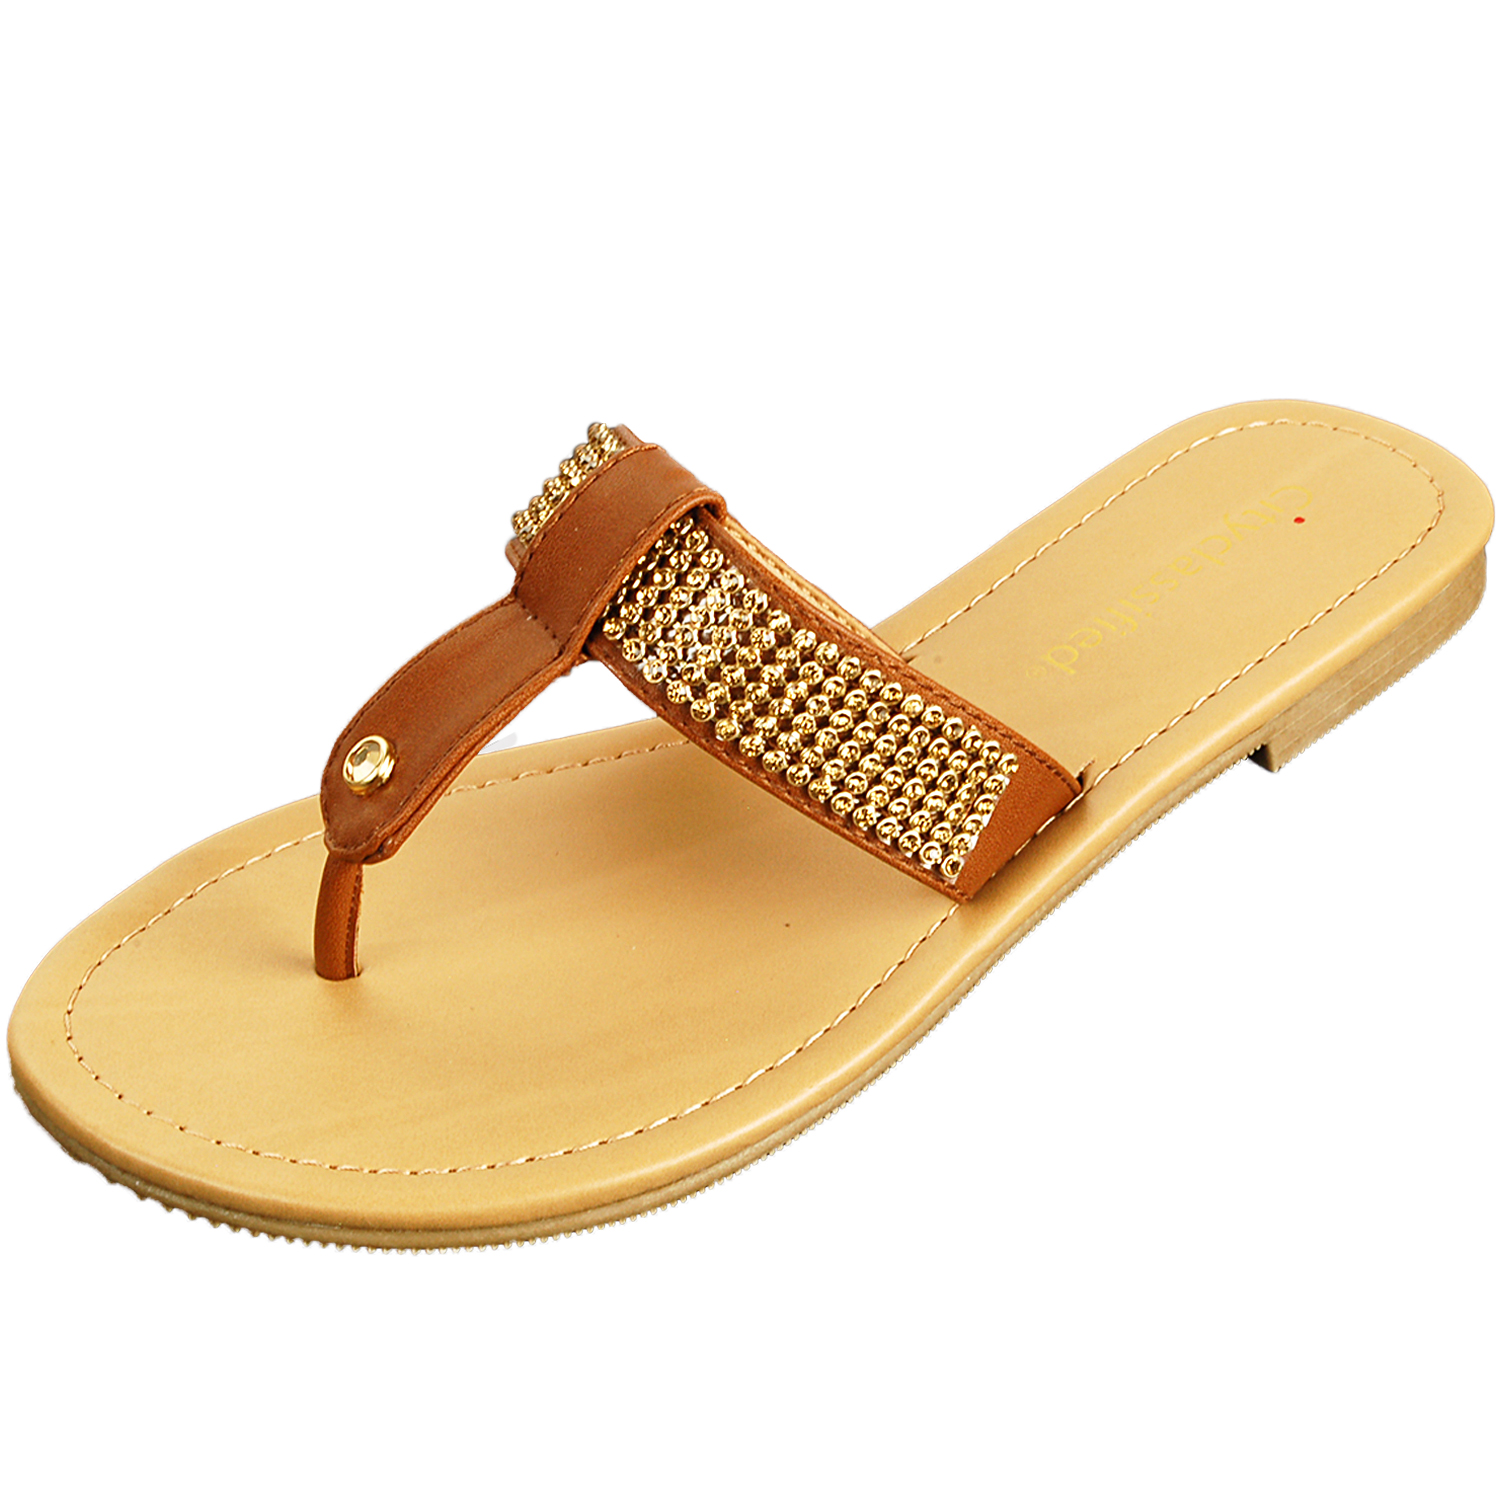 Find great deals on eBay for flat flip flop. Shop with confidence.